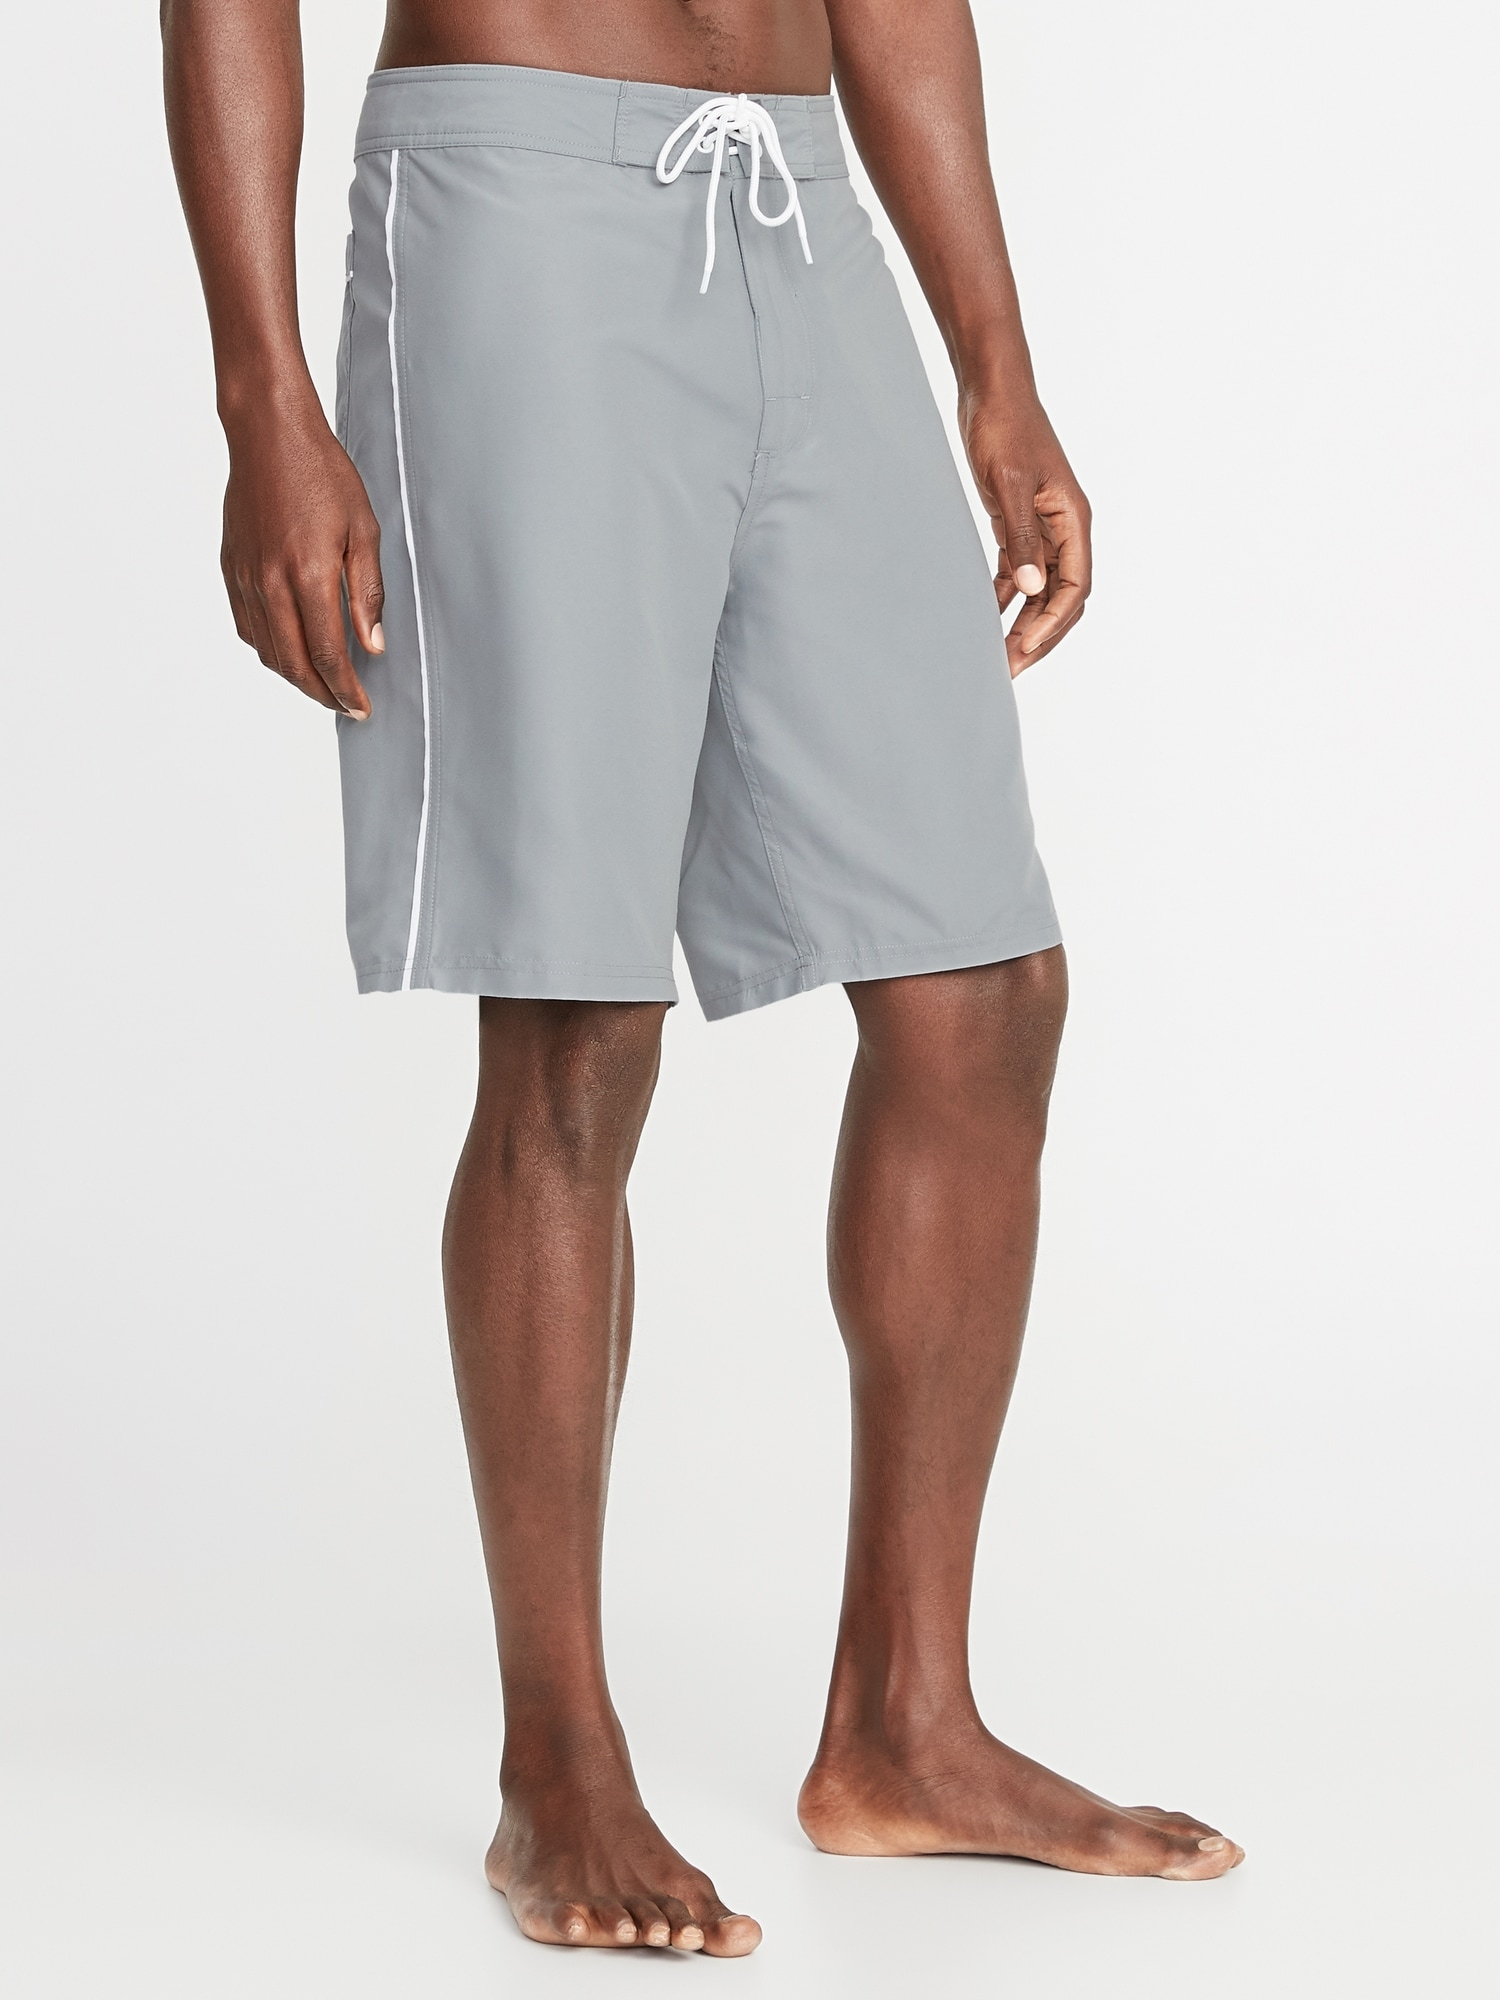 cefcc448a9 Side-Piping Board Shorts for Men - 10-inch inseam   Old Navy